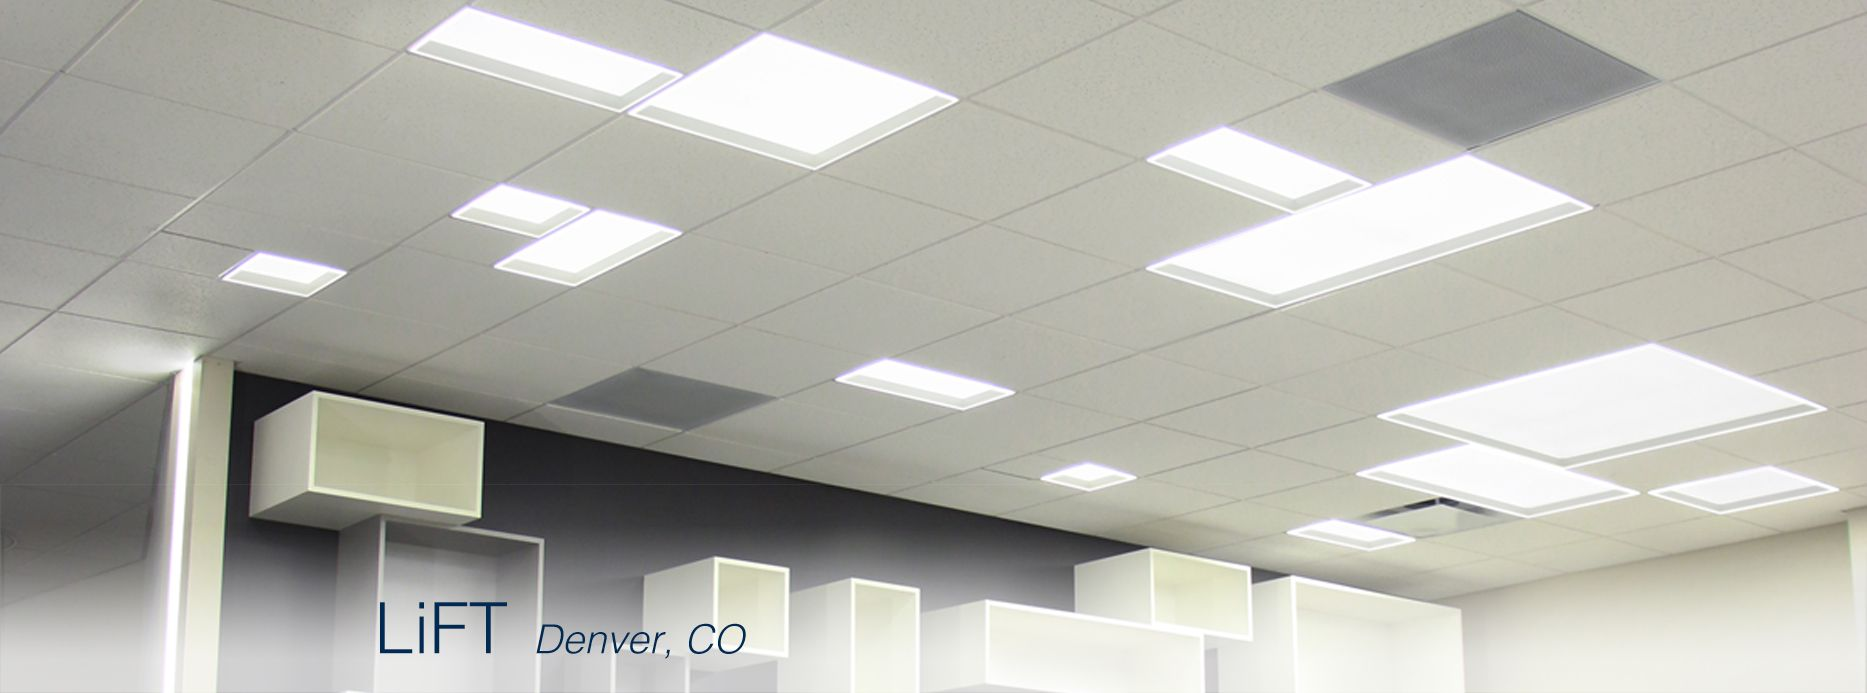 Pinnacle Architectural Lighting | Commercial Lighting | Recessed Lighting |  Linear Lighting